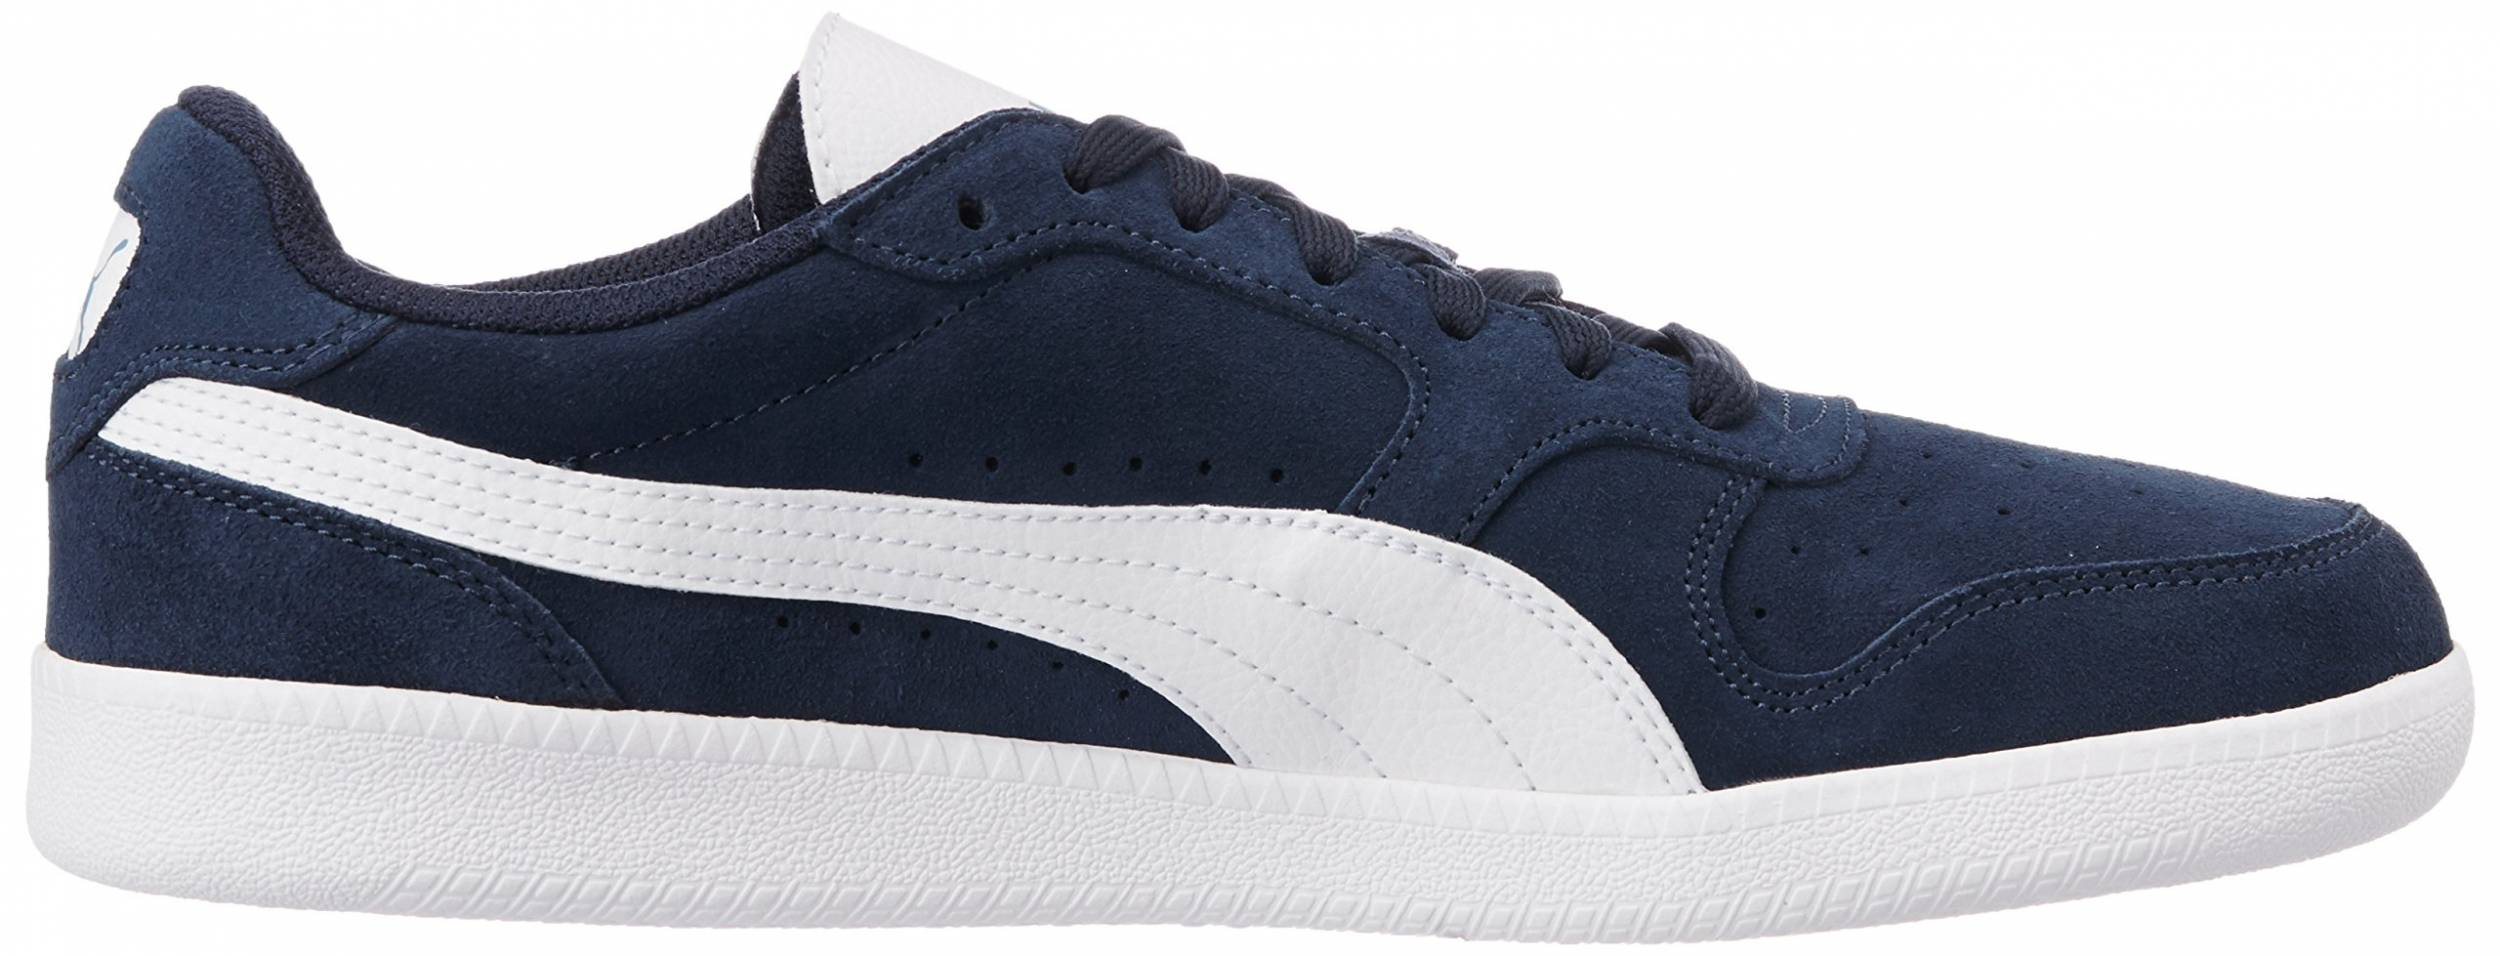 10 Reasons to/NOT to Buy Puma Icra Trainer SD (Sep 2021) | RunRepeat